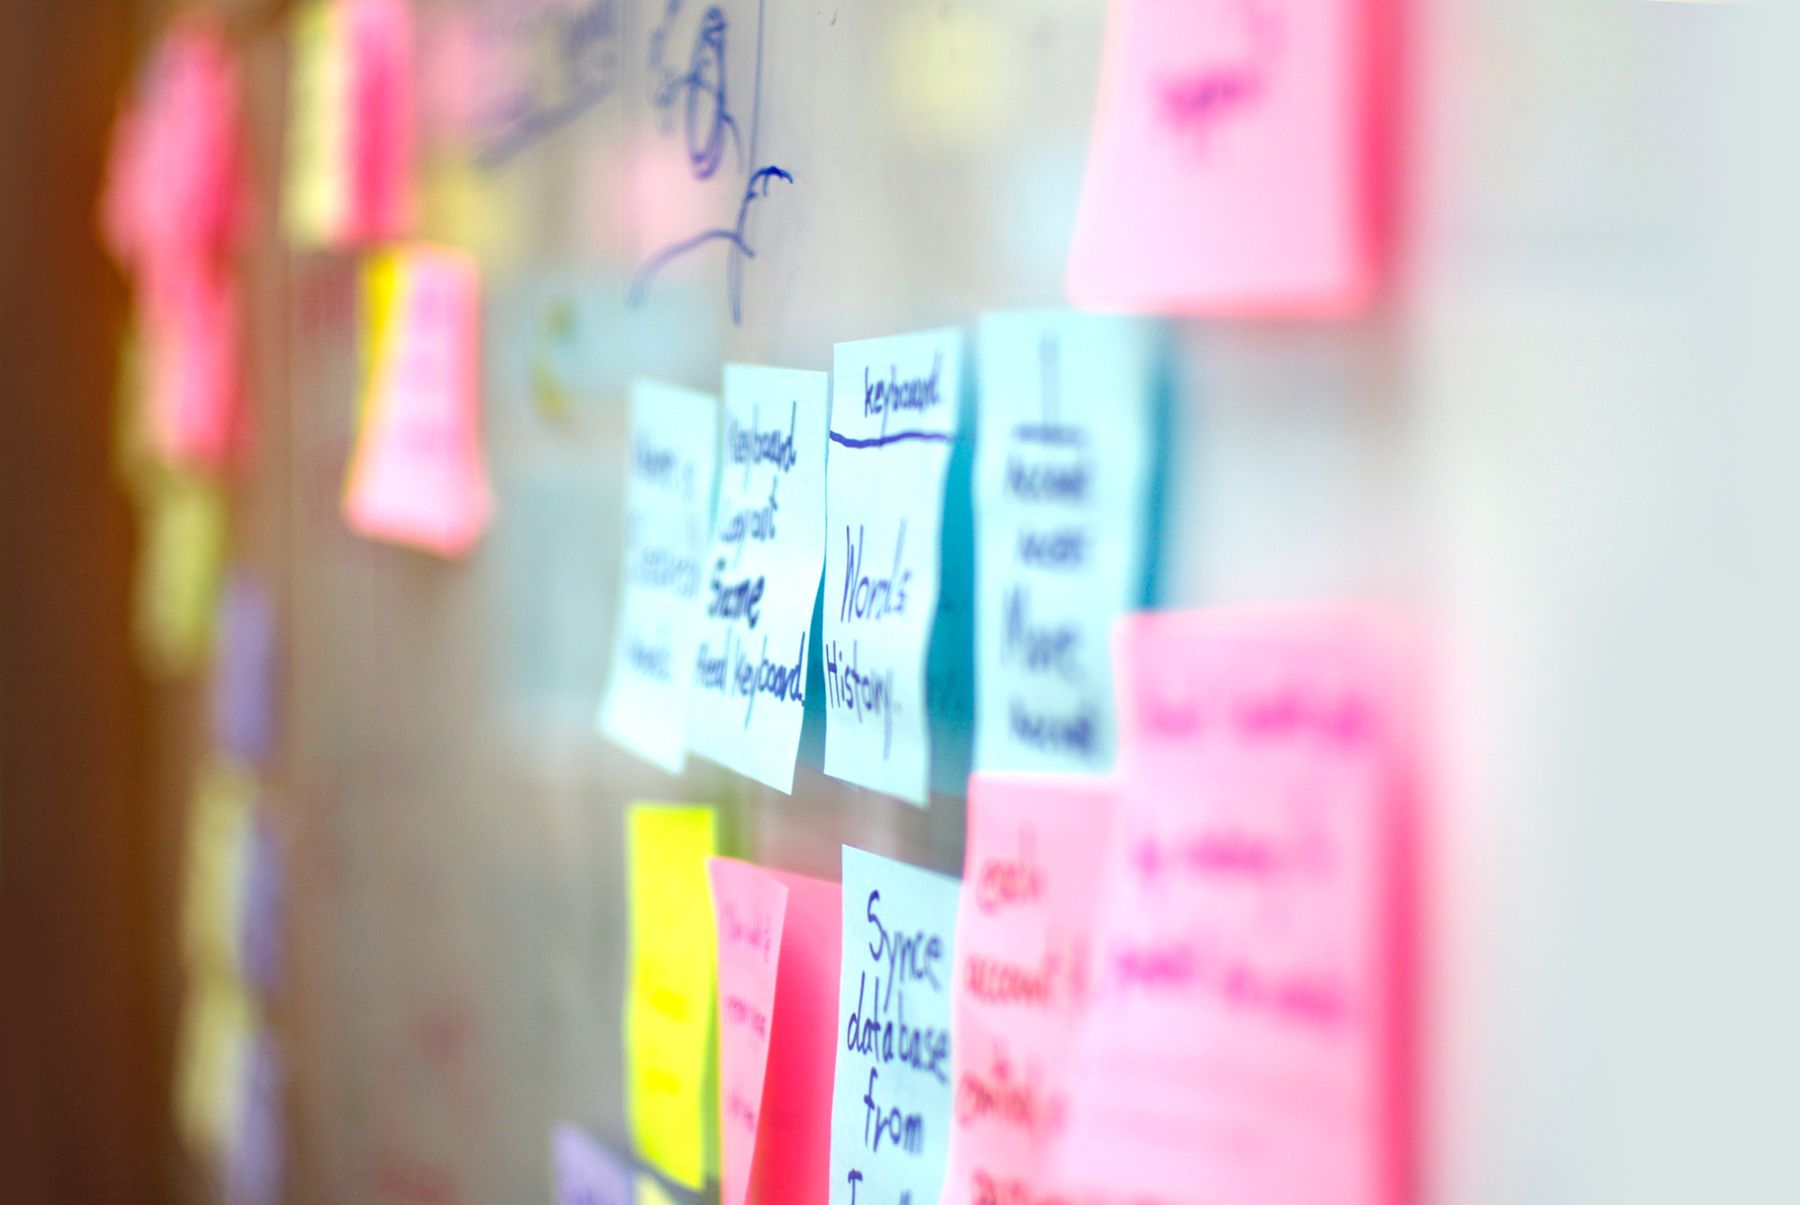 Post-it notes on a board